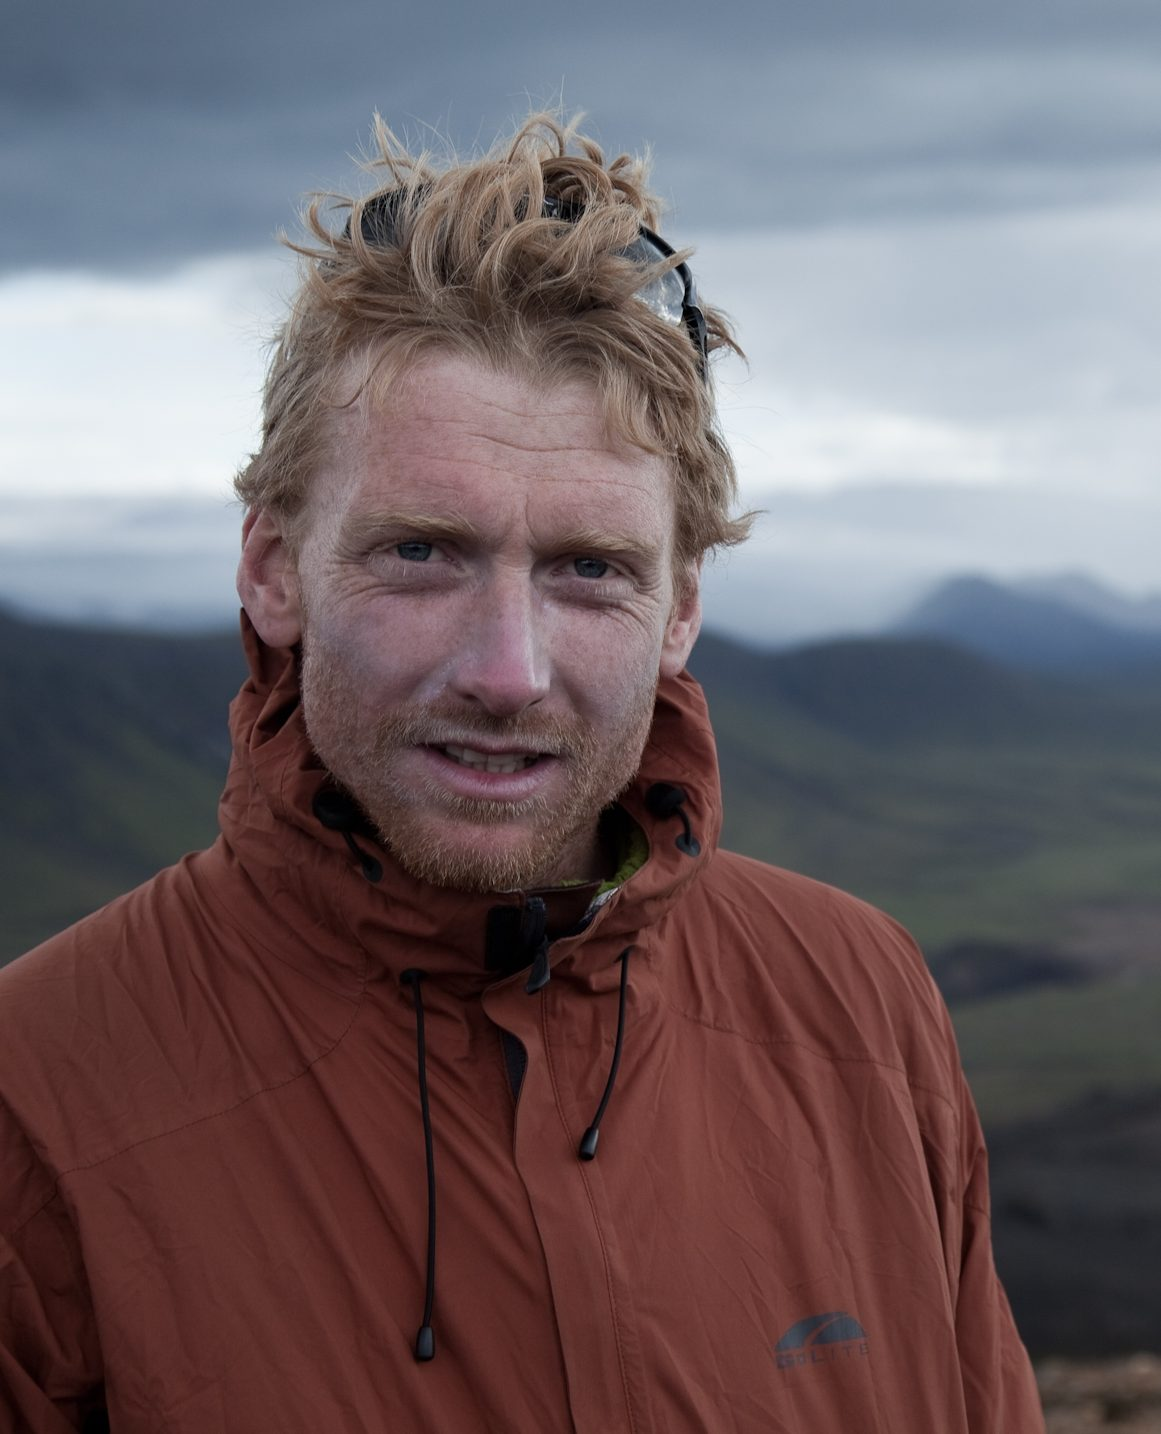 Alastair Humphreys in mountains